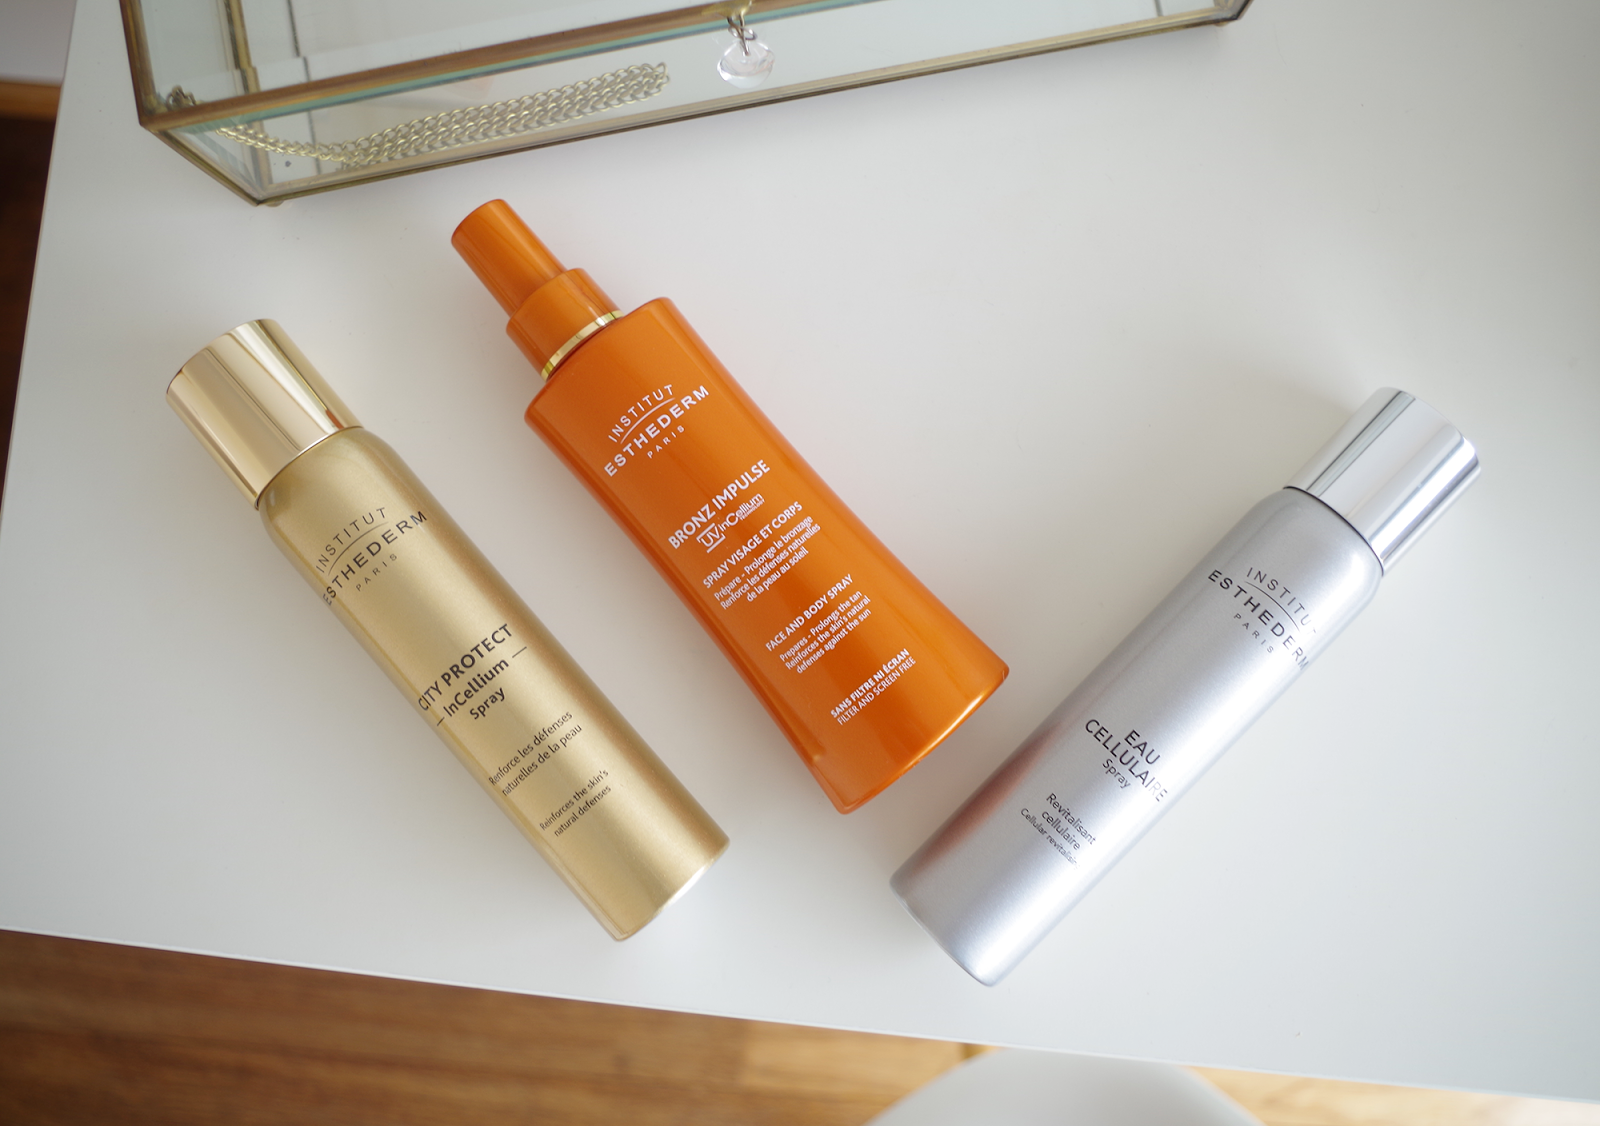 SUMMER WITH ESTHEDERM